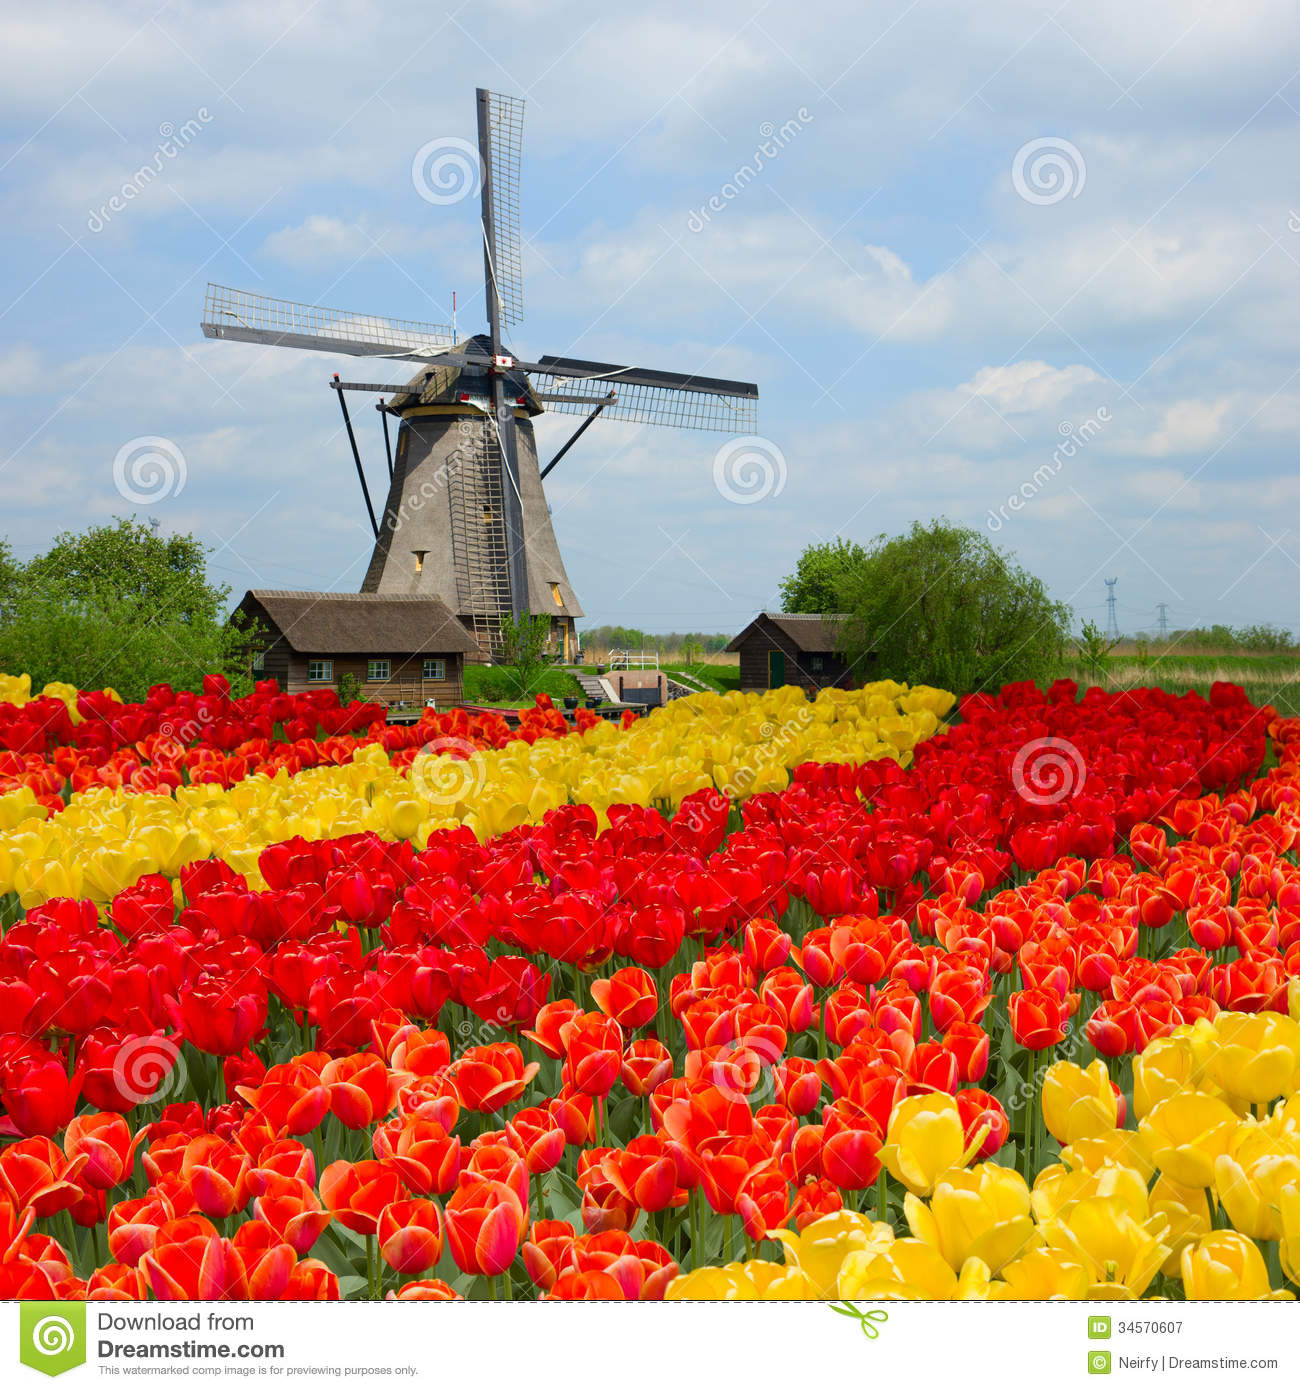 Netherlands Tulips Stock Photos, Images, & Pictures.